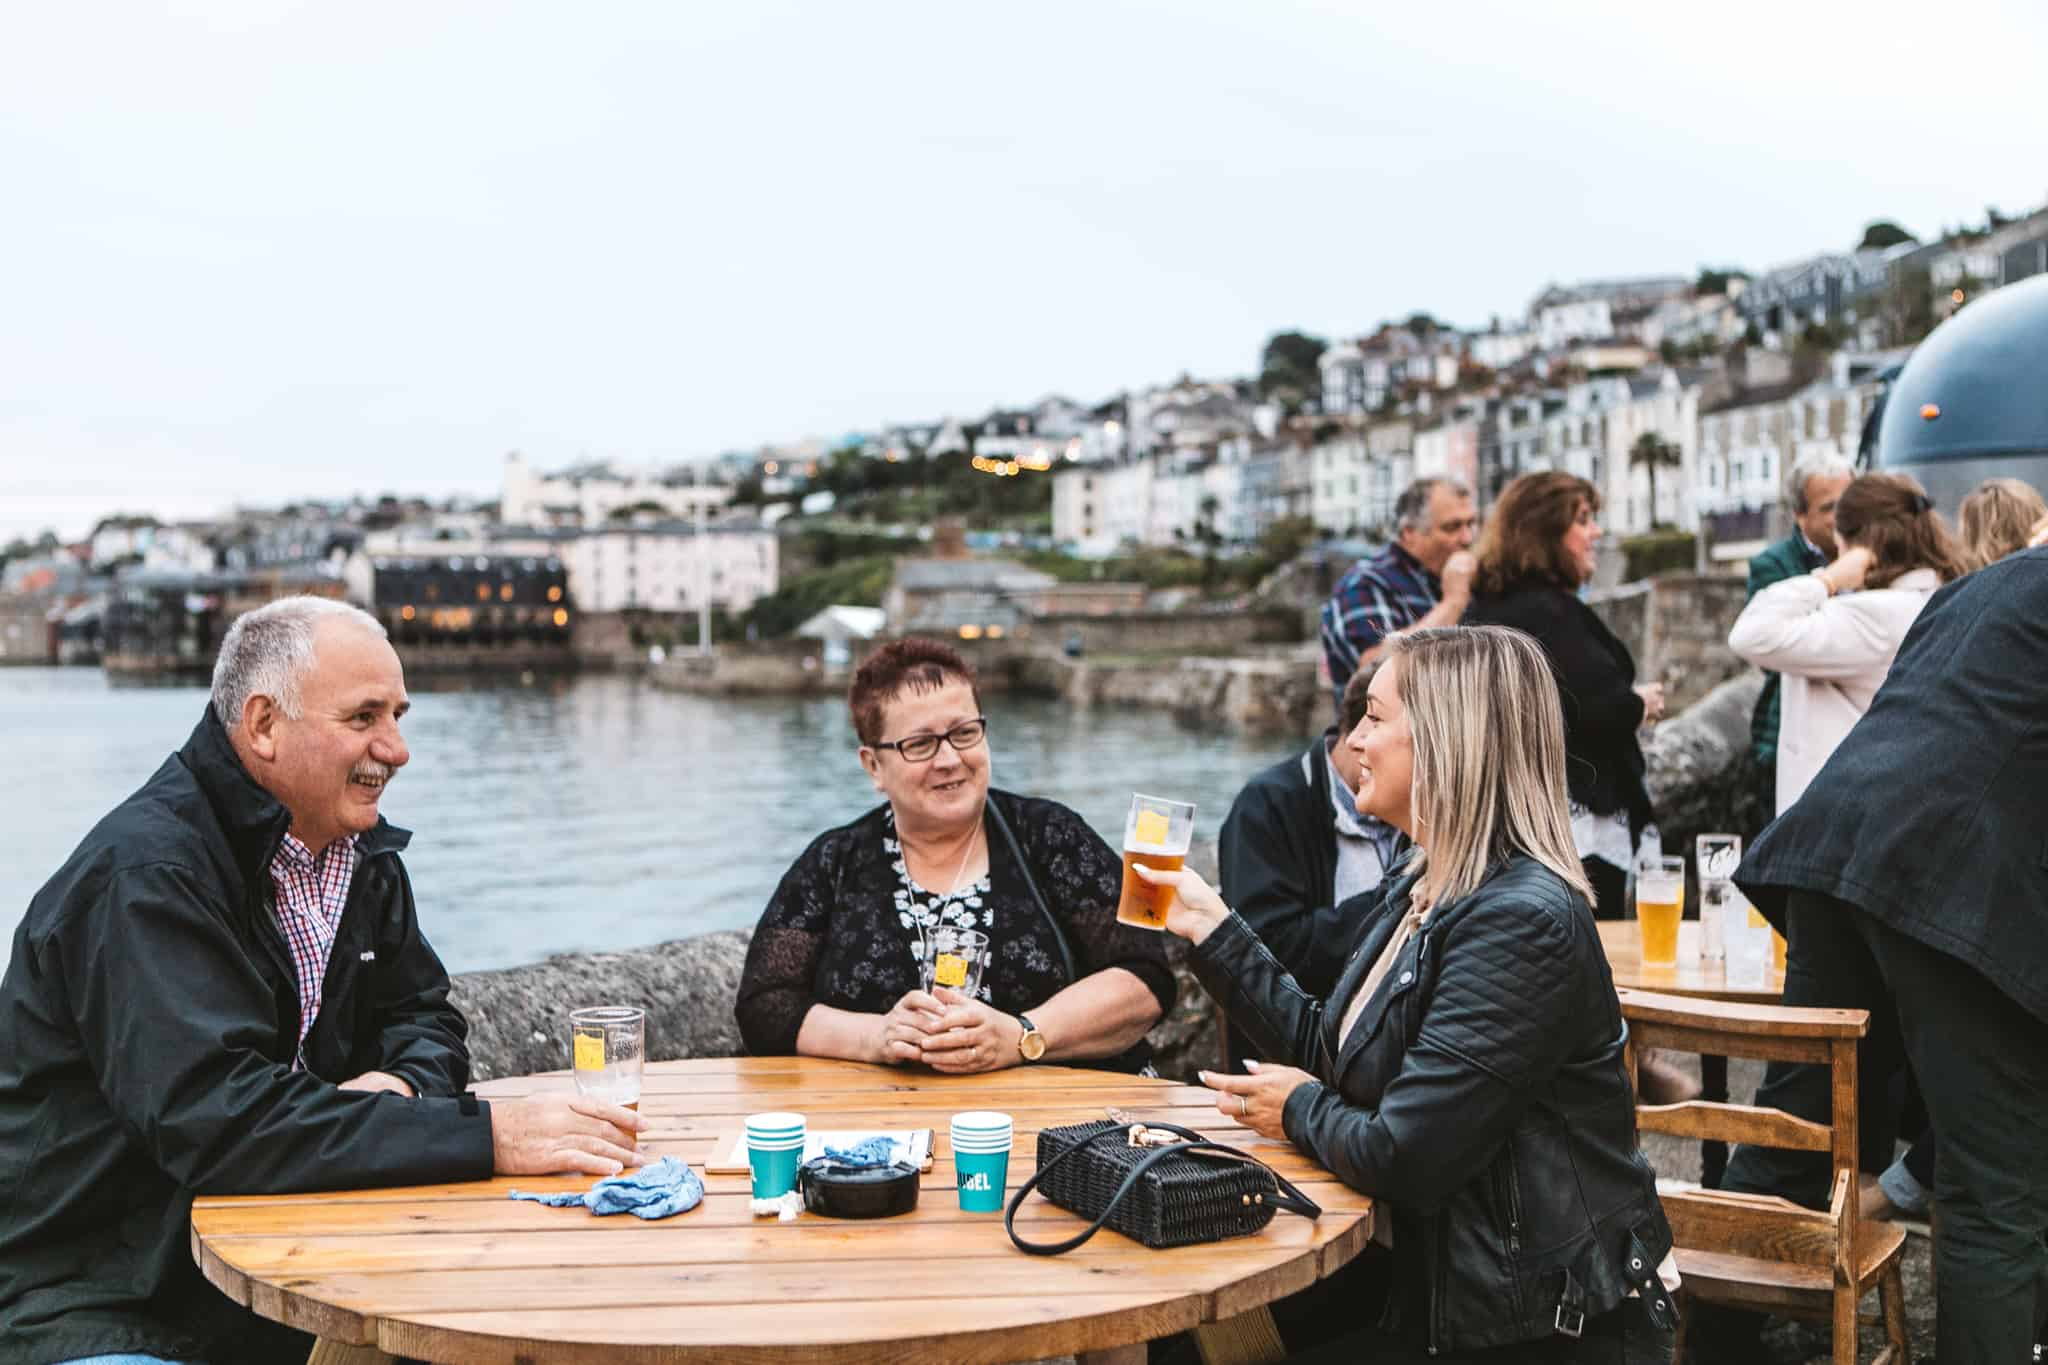 falmouth-week-at-the-working-boat-pub-live-music-events-falmouth-cornwall (28 of 114)